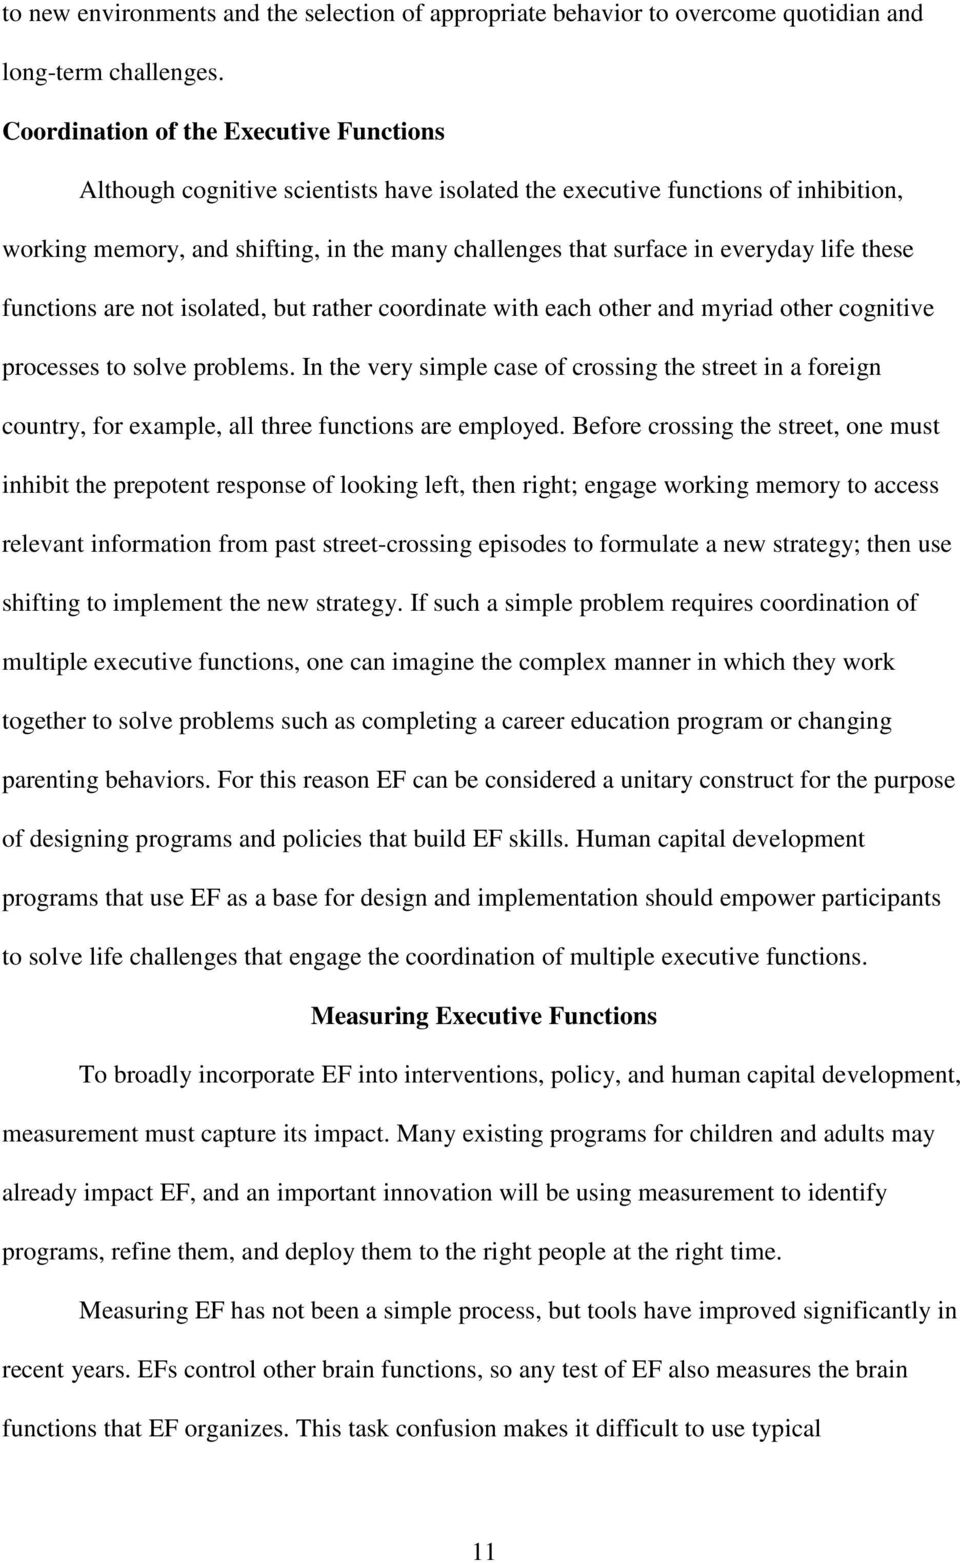 everyday life these functions are not isolated, but rather coordinate with each other and myriad other cognitive processes to solve problems.